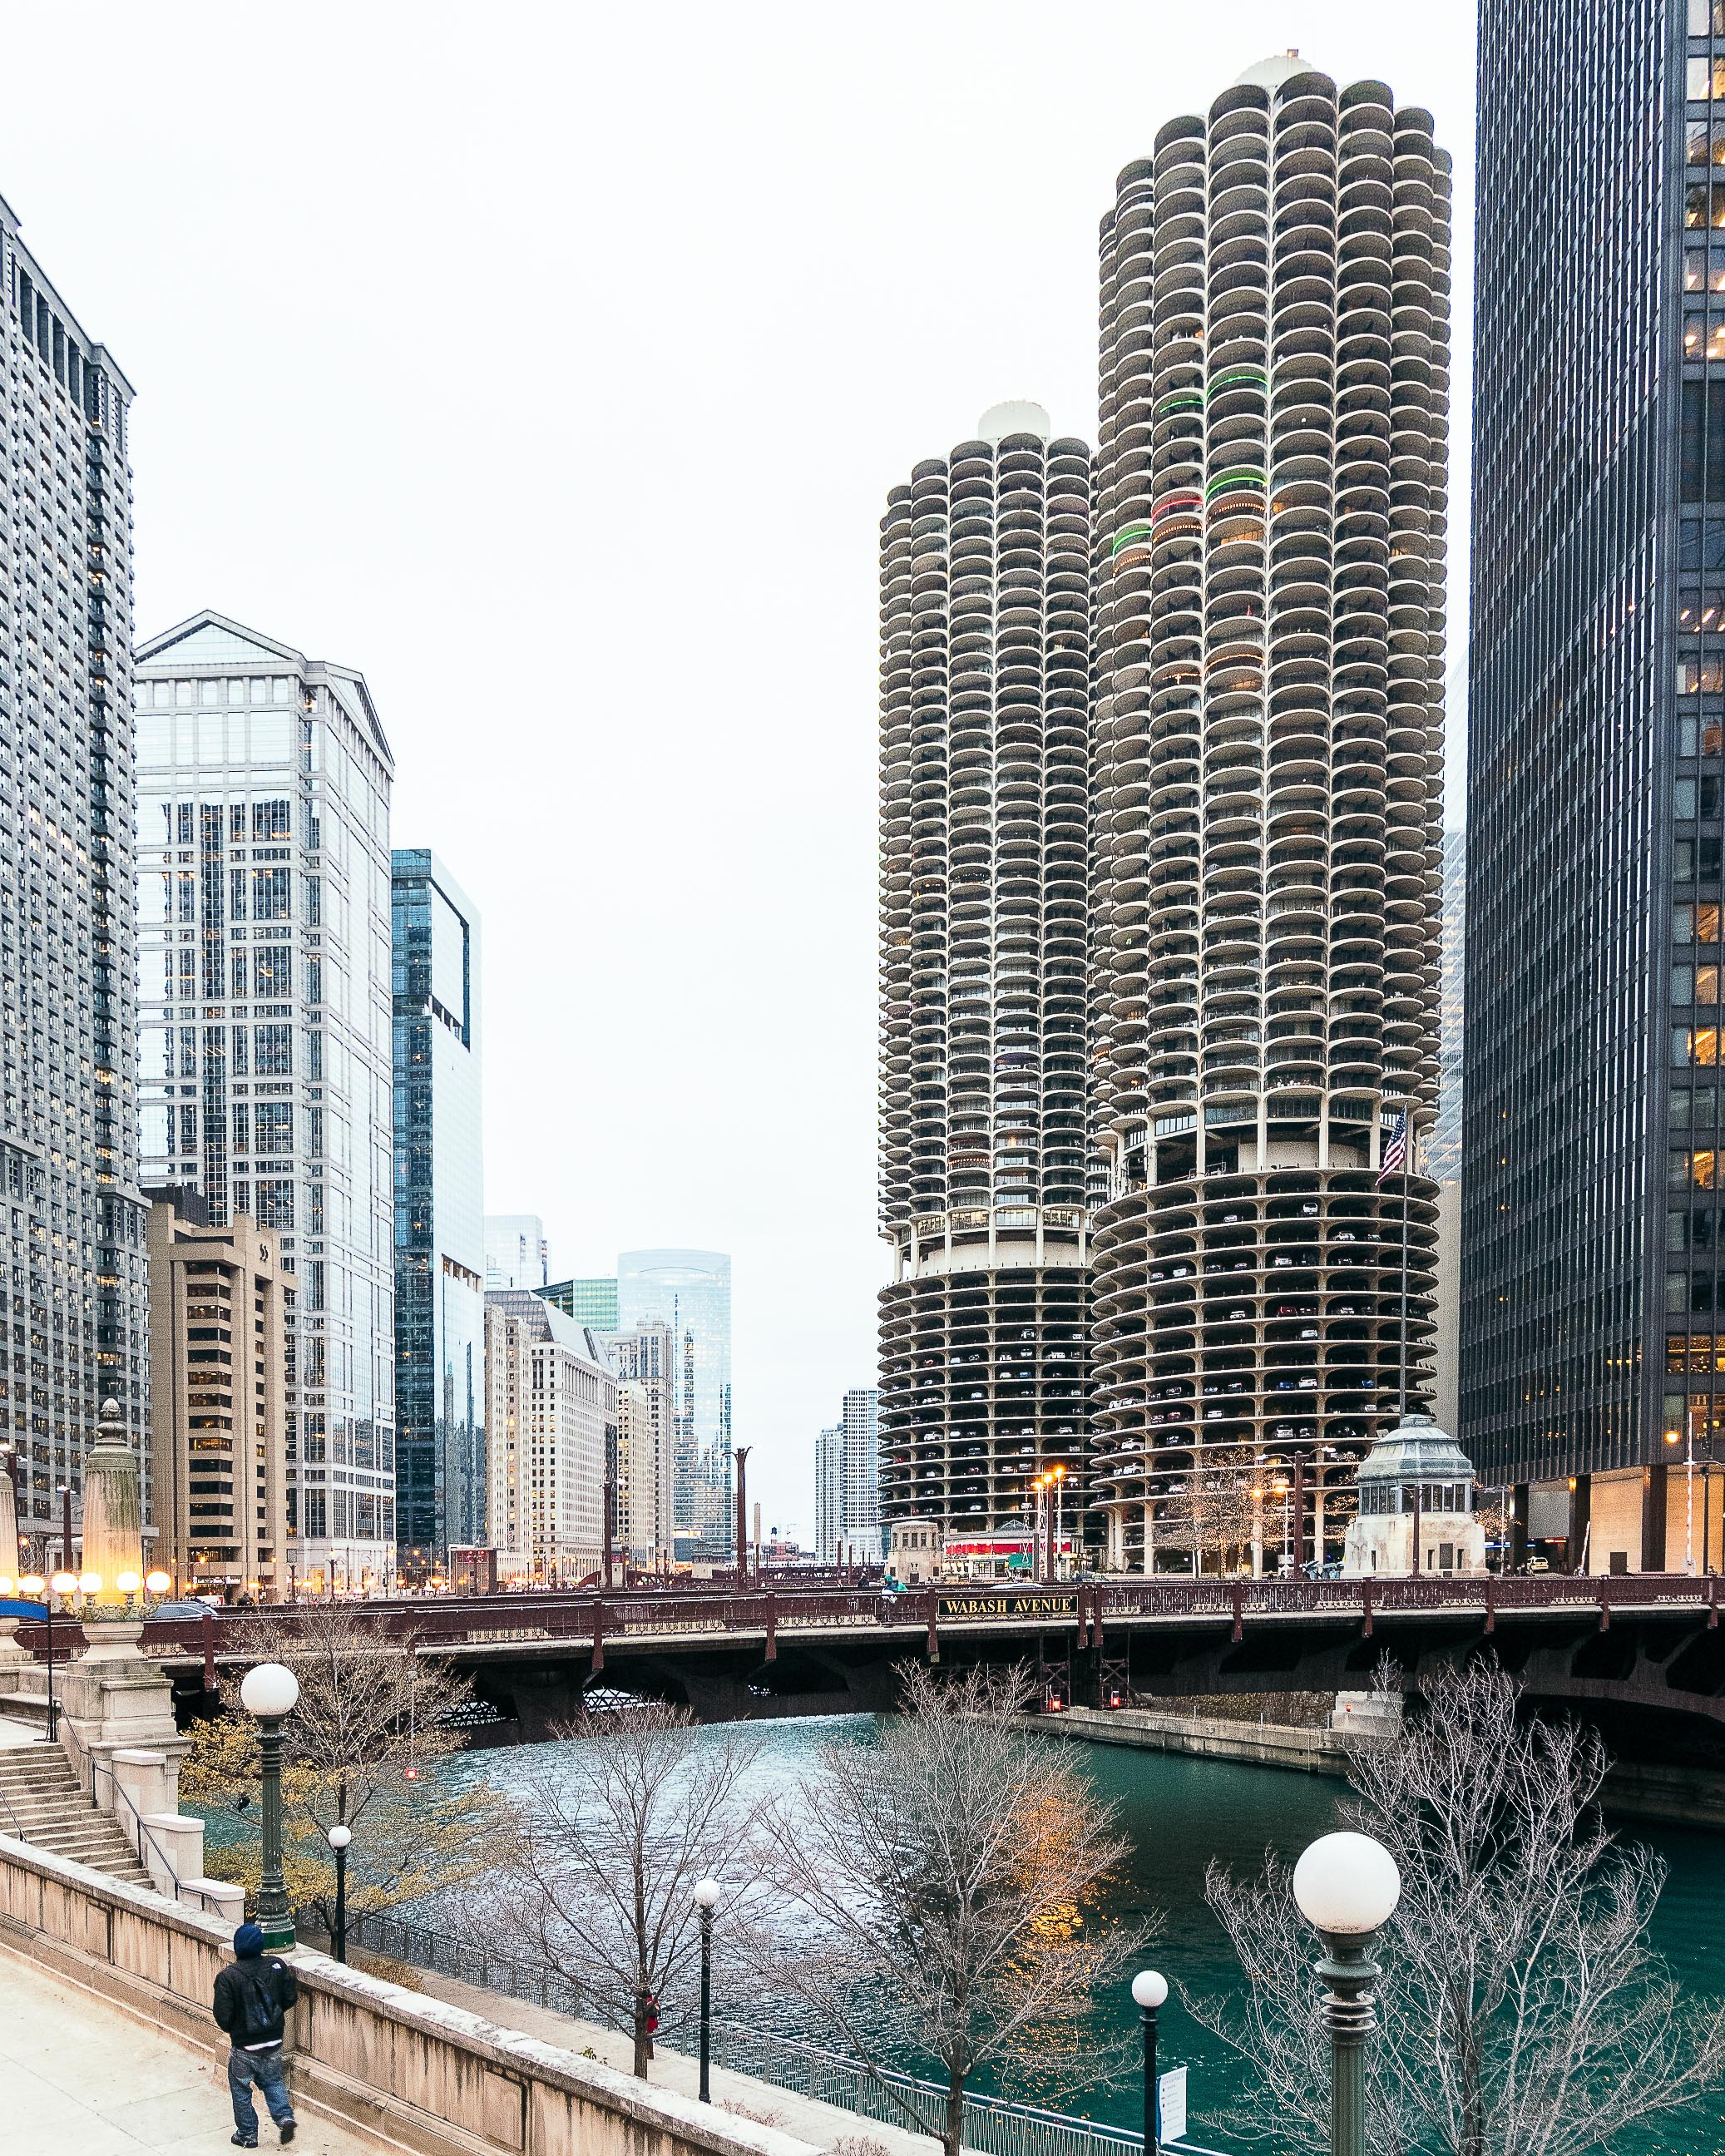 Chicago-MarcNoussPhotography-3.jpg